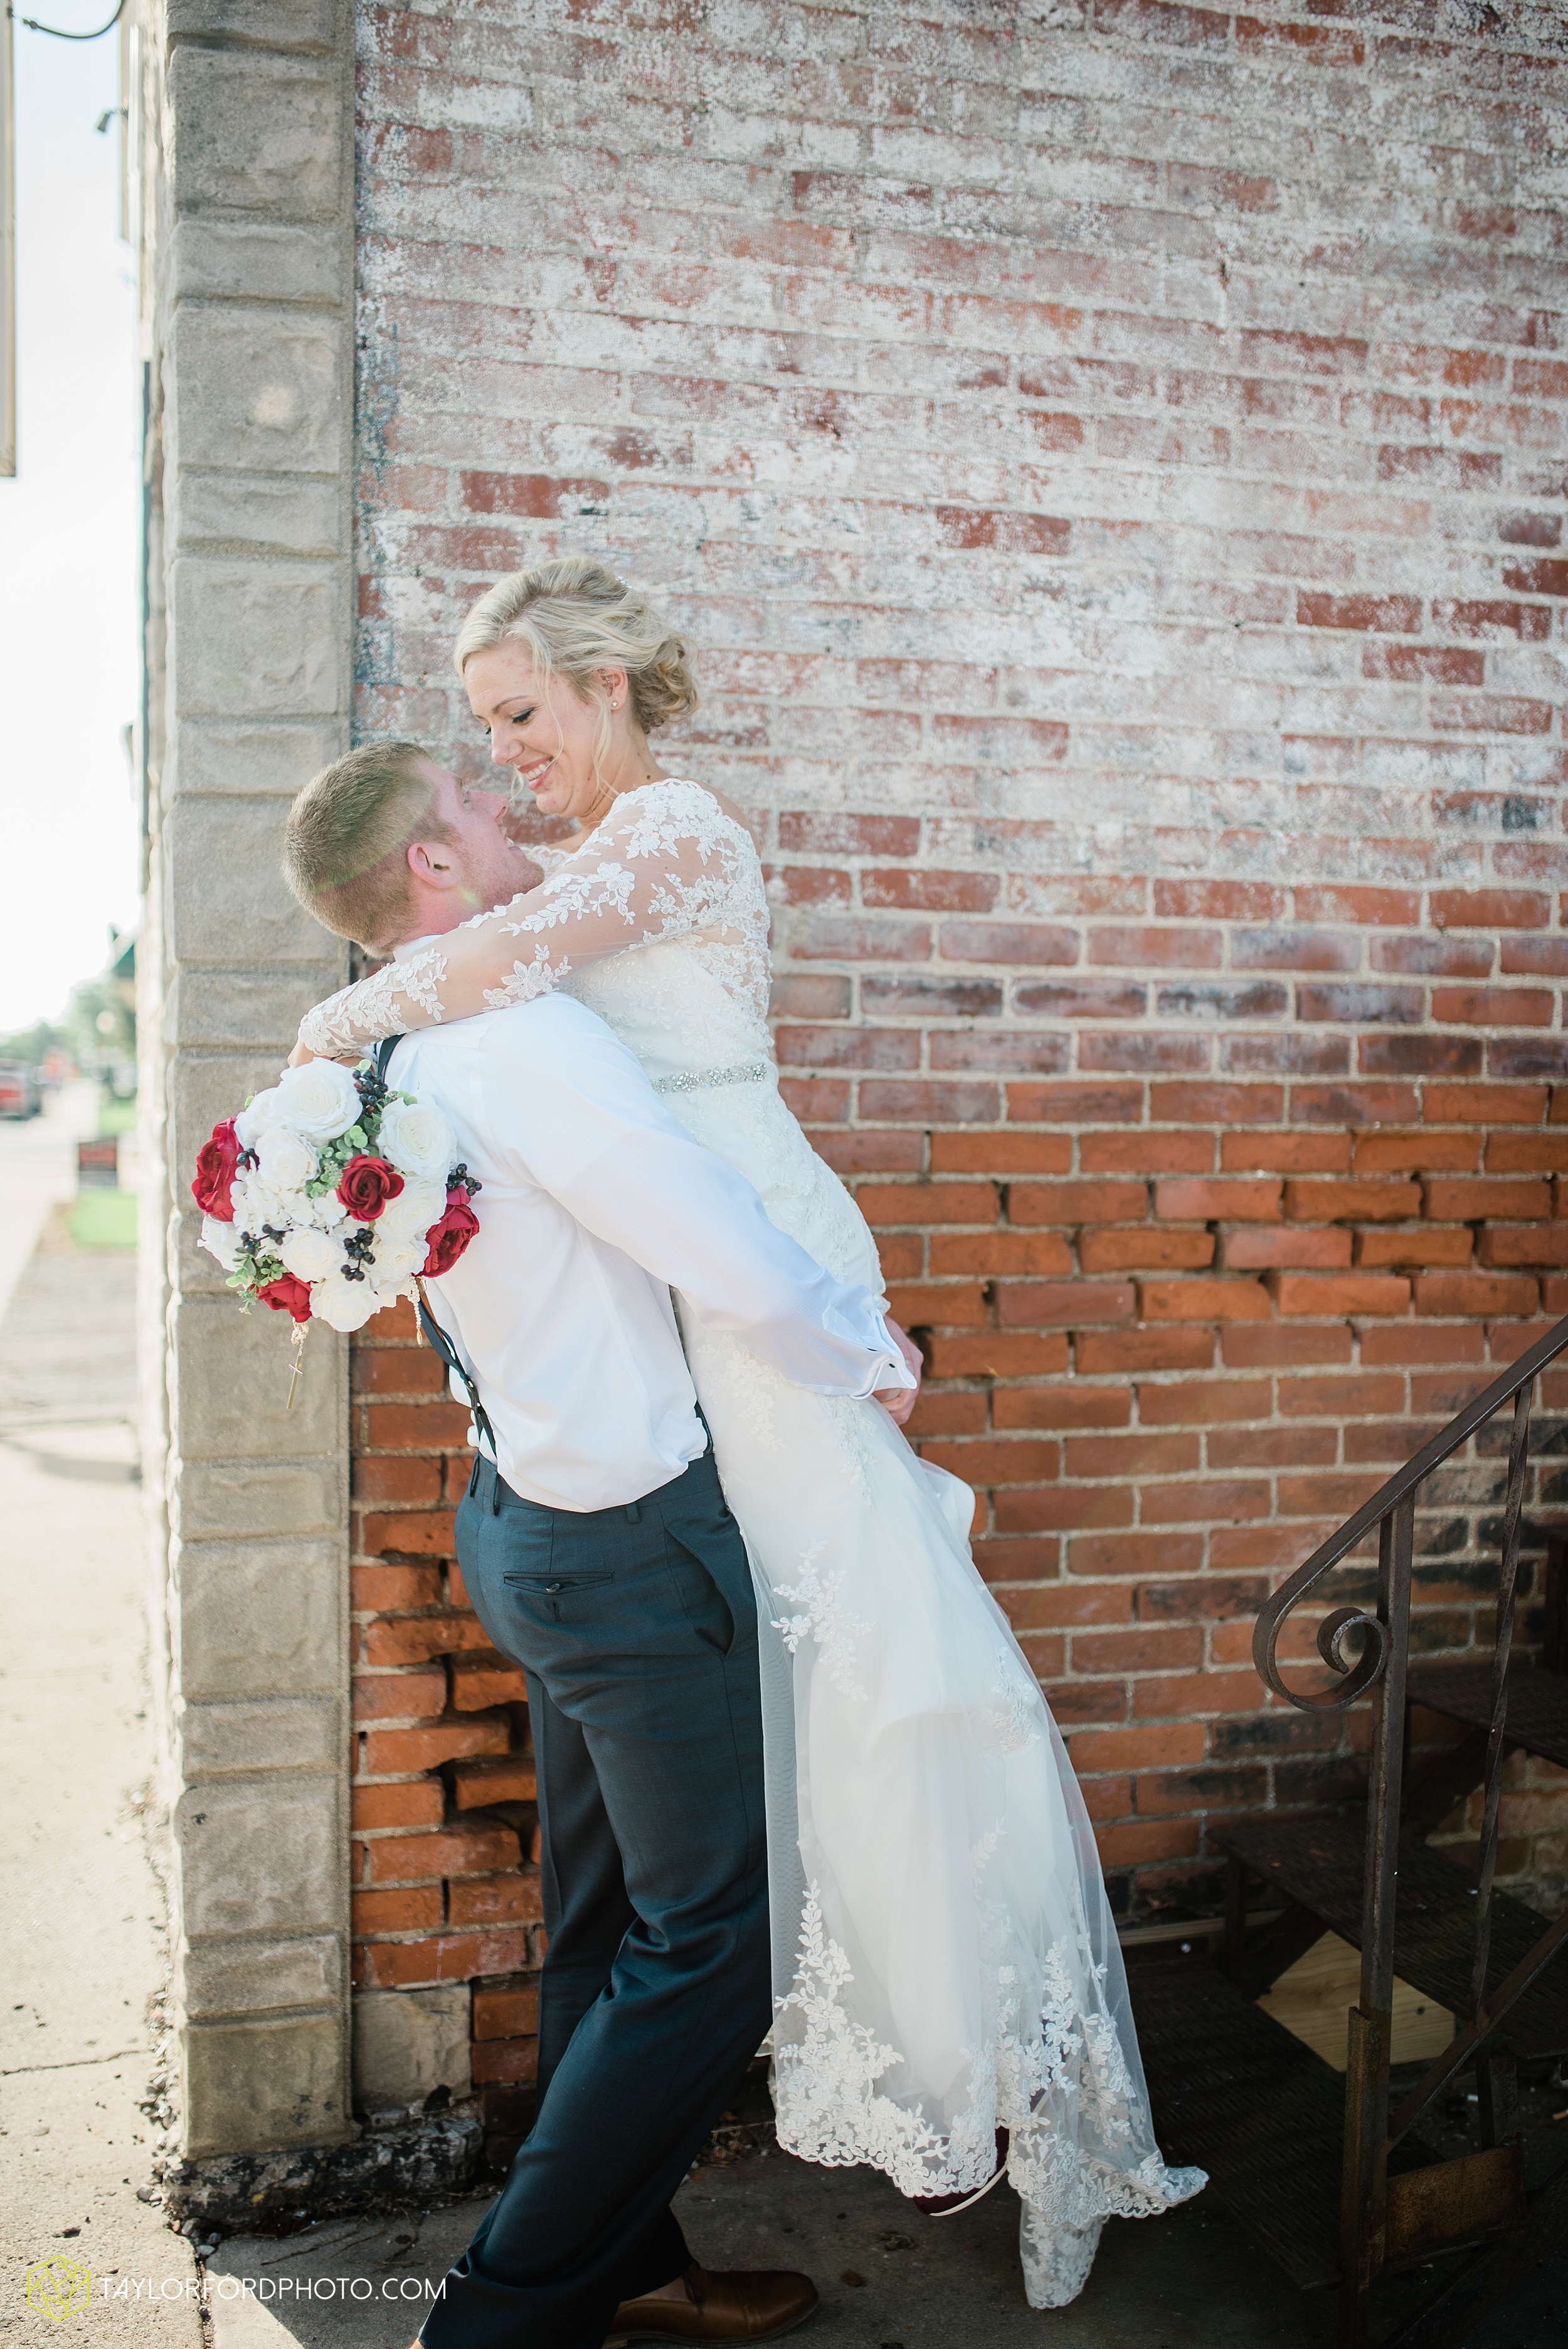 gayle-rayman-mike-steele-ottoville-ohio-wedding-immaculate-conception-parish-center-wedding-sycamore-lake-winery-wannamachers-photographer-taylor-ford-photography_0431.jpg